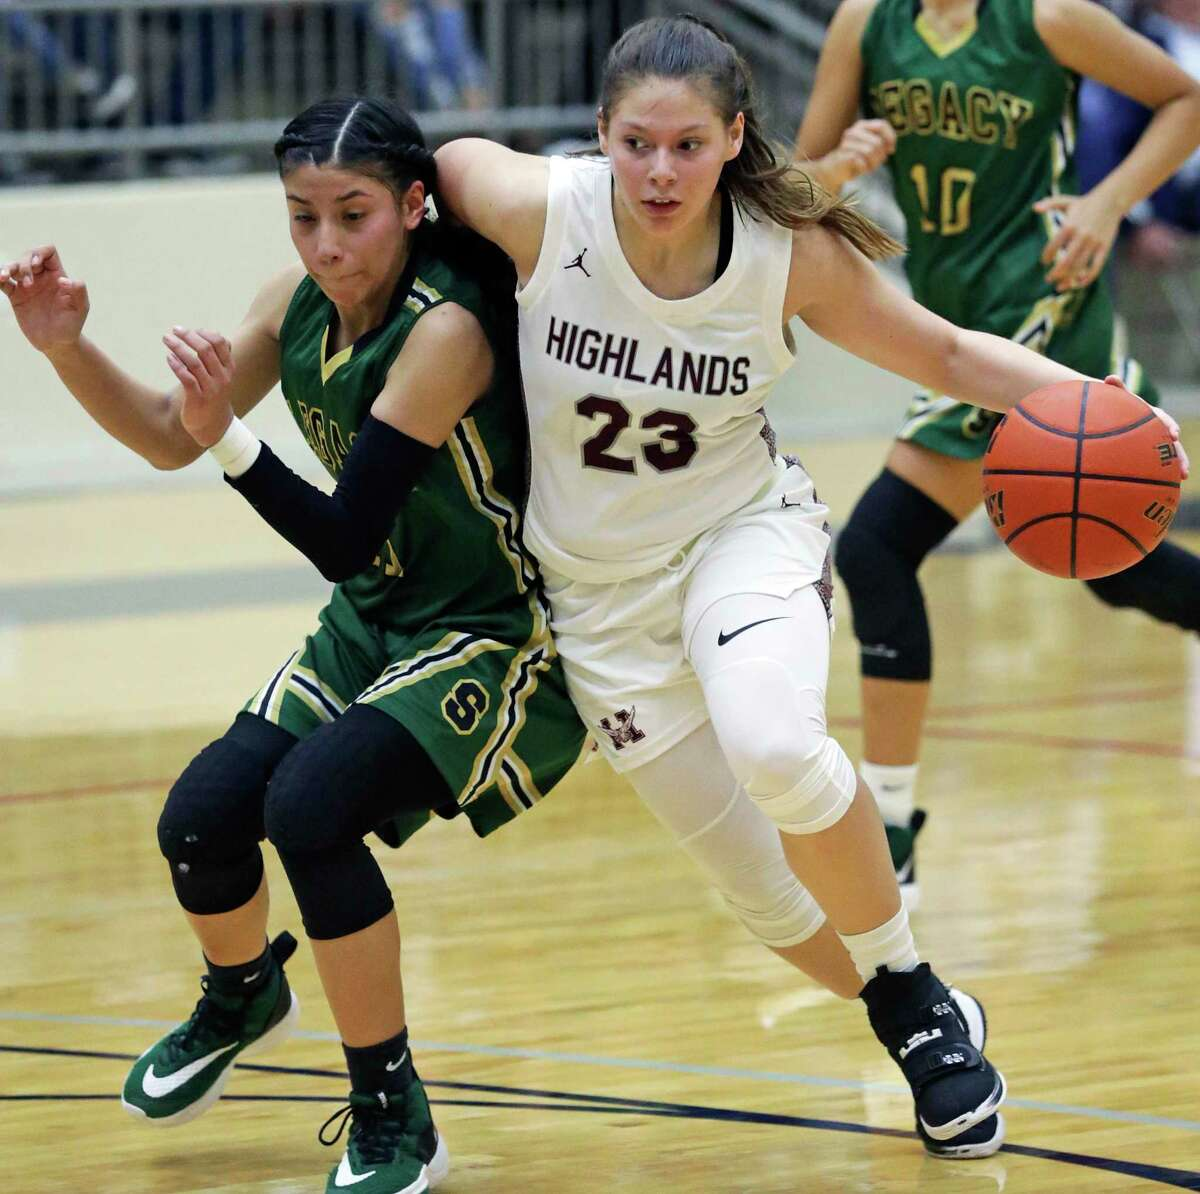 Owl guard Layla Mendoza slides past Ashley Corpus as Highlands plays Southwest Legacy in first round girls basketball playoffs at Alamo Convocation Center on Feb. 18, 2020.